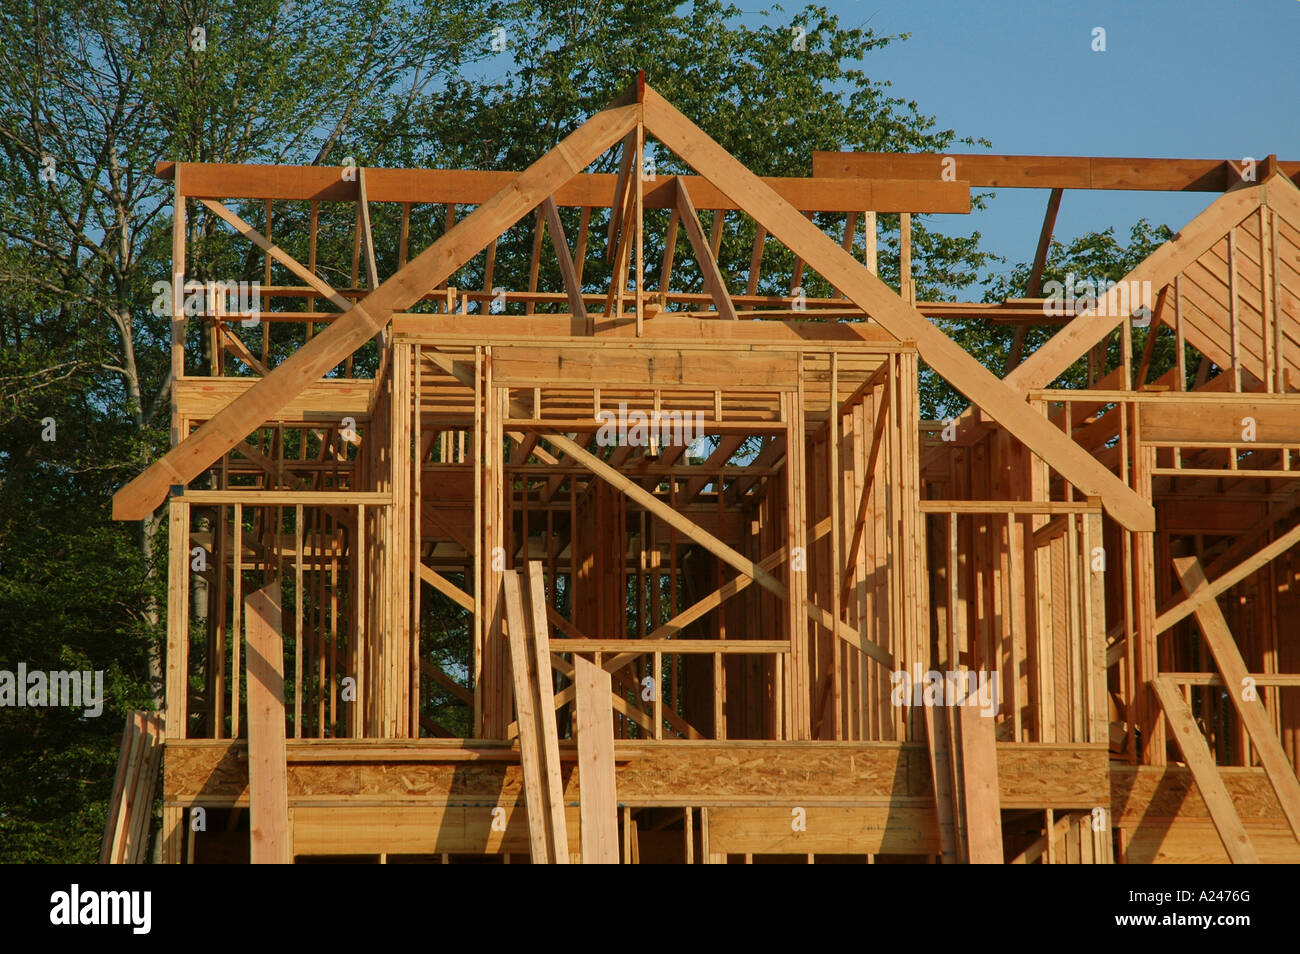 A House Under Construction In The Framing Stage Stock